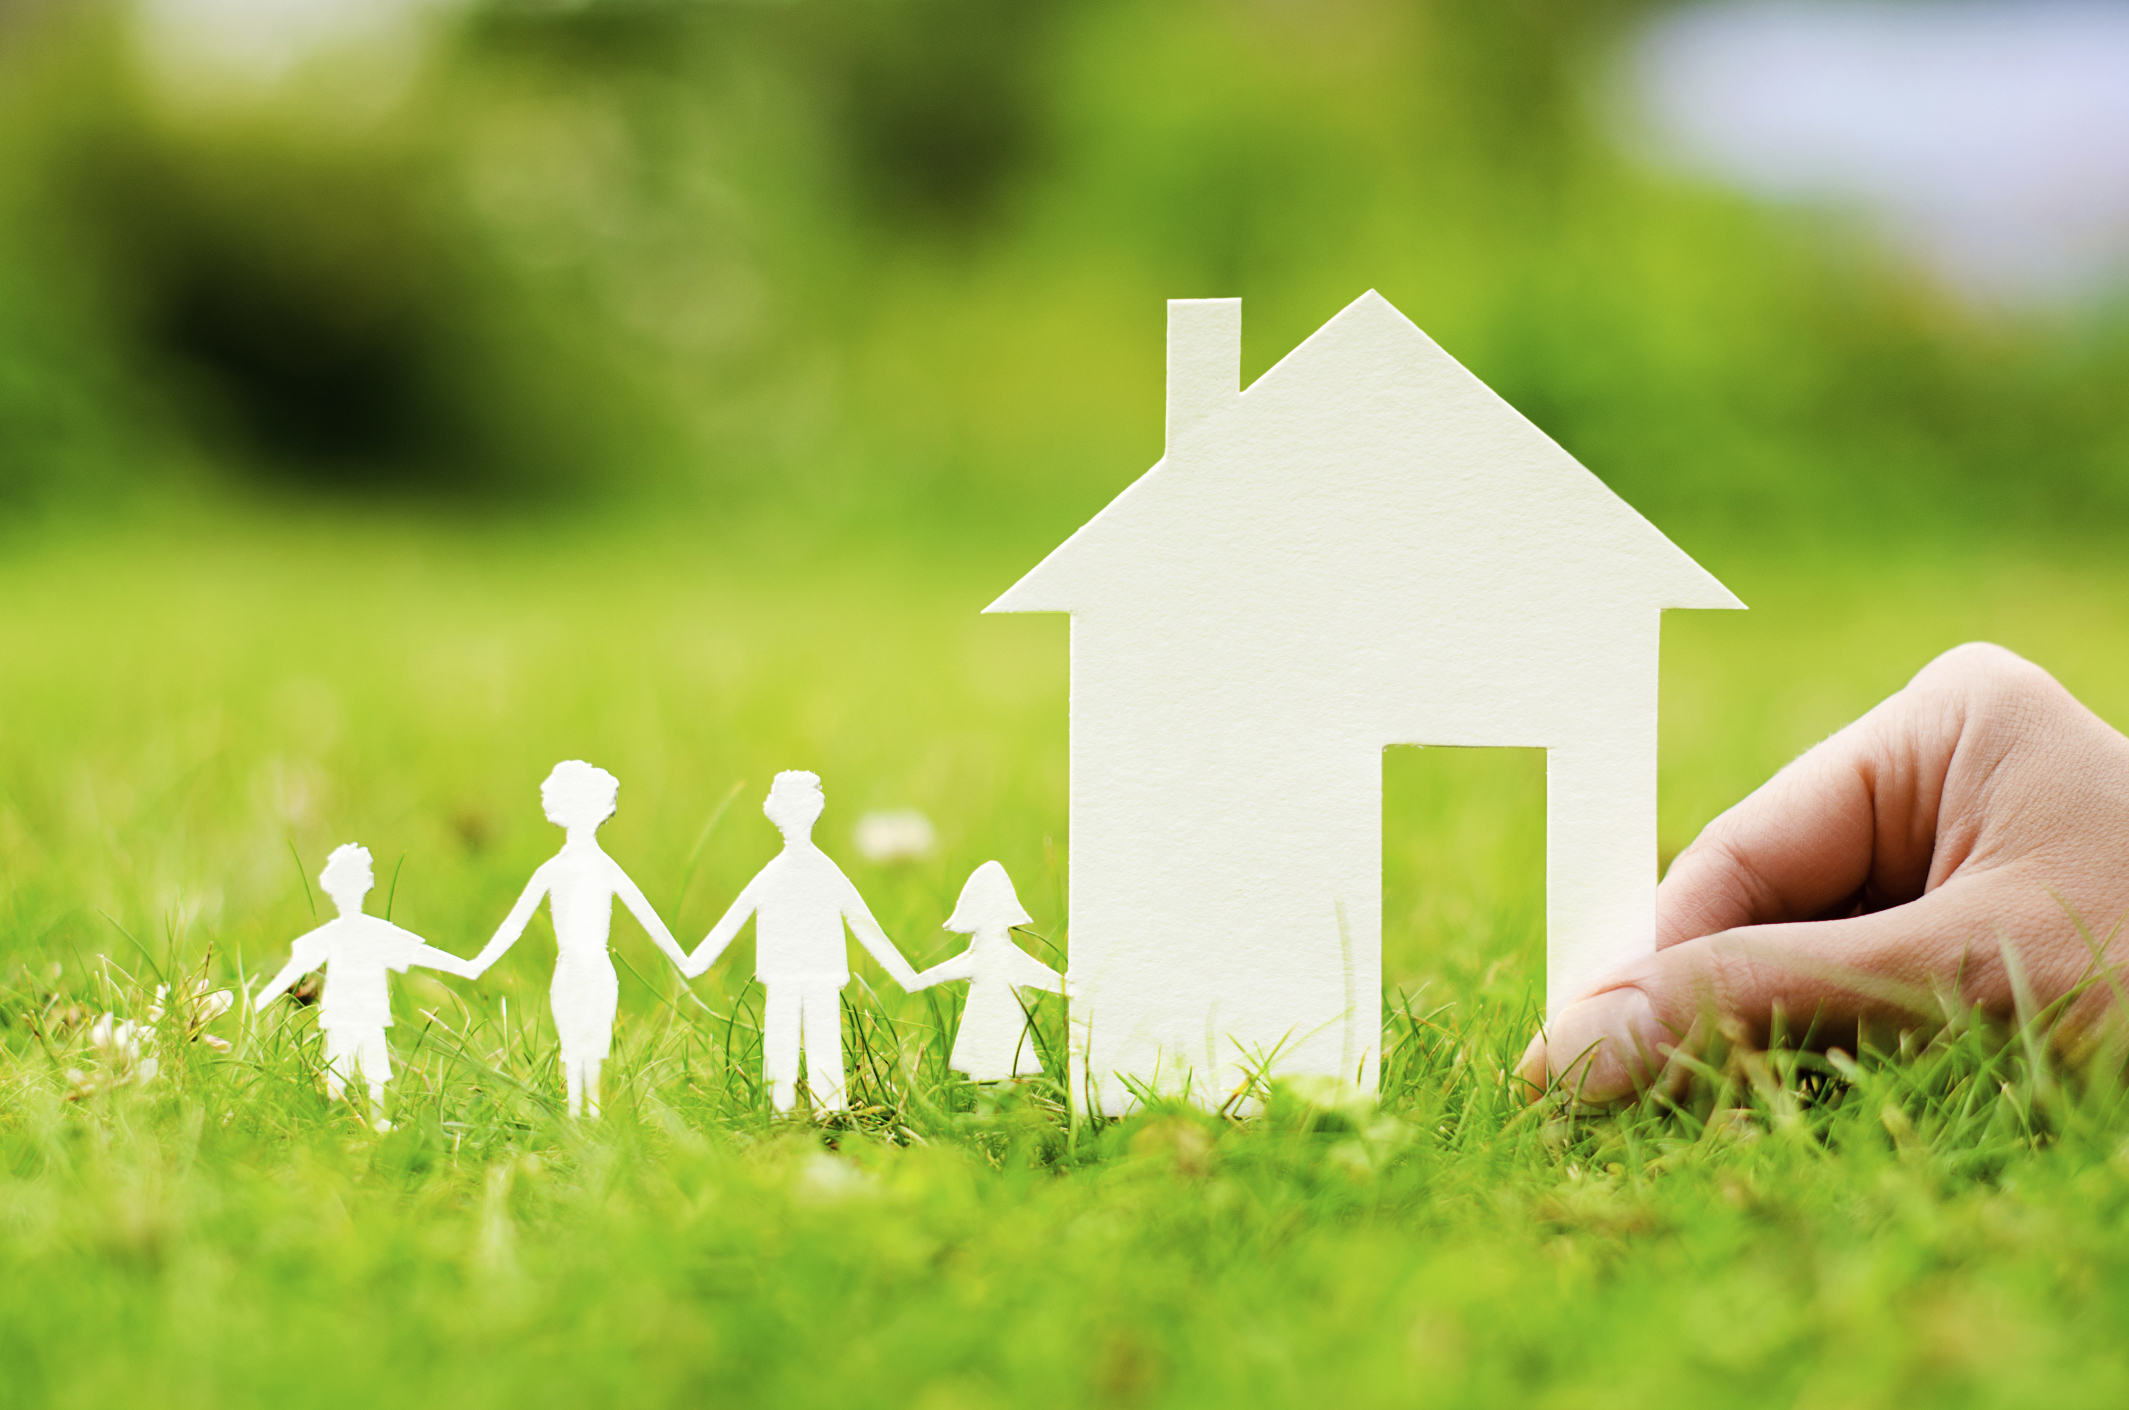 Opportune moment for homebuyers to invest in property